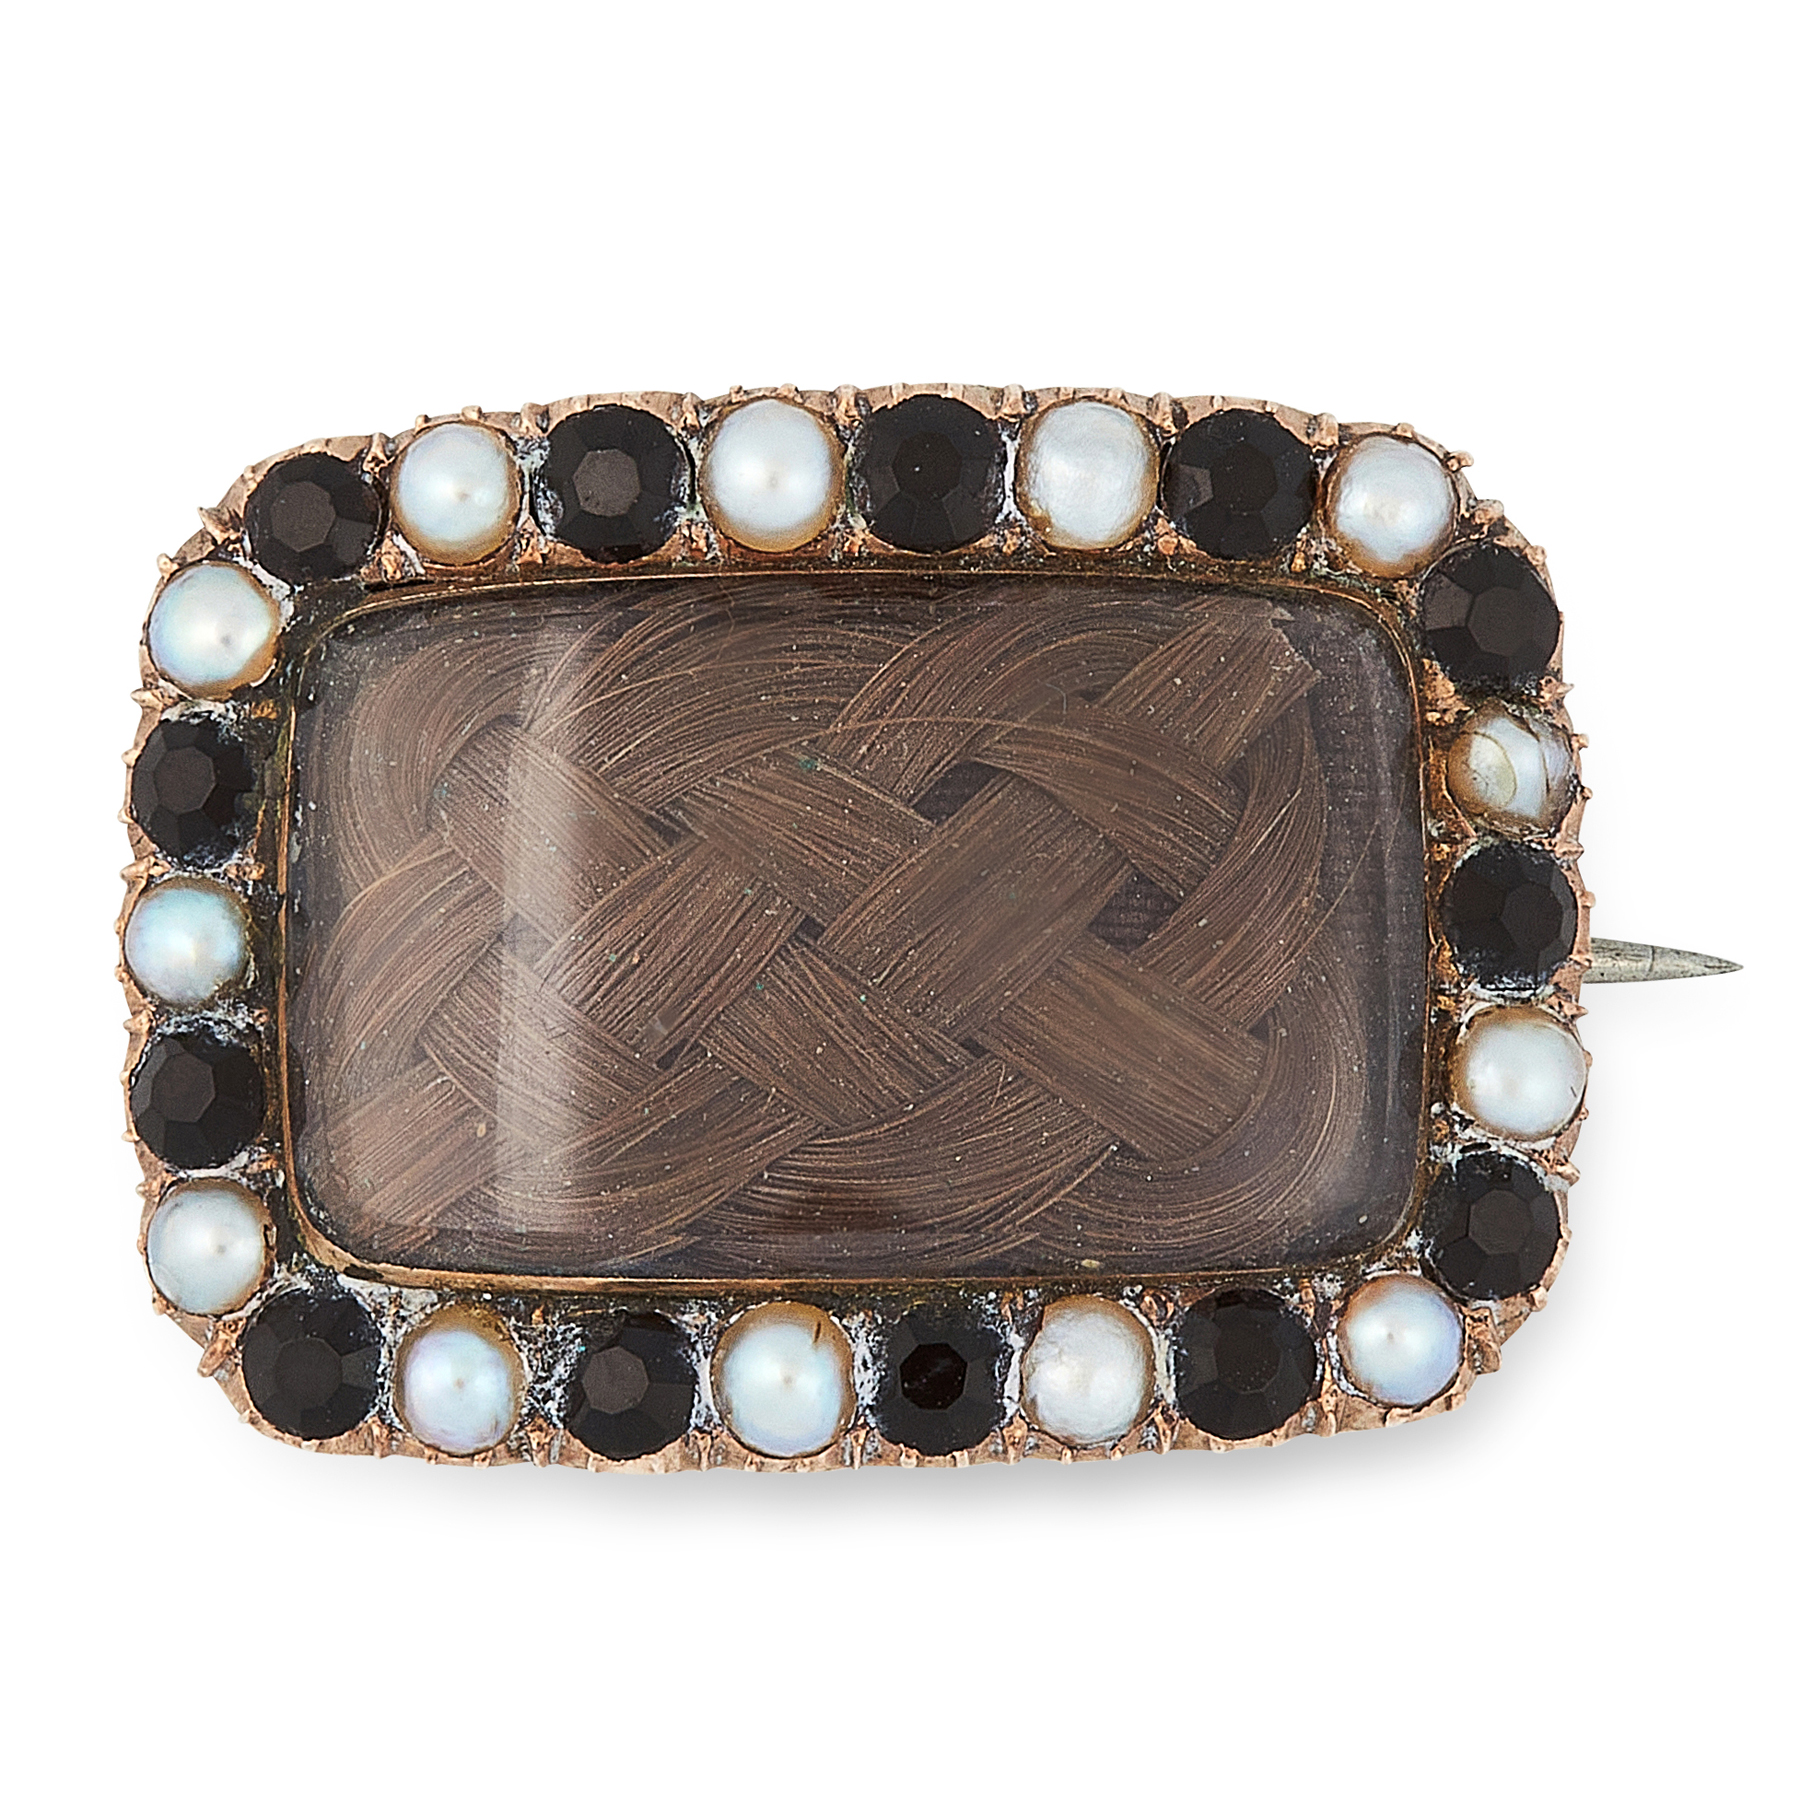 AN ANTIQUE PEARL, JET AND HAIRWORK MOURNING BROOCH, 19TH CENTURY in yellow gold, set with a